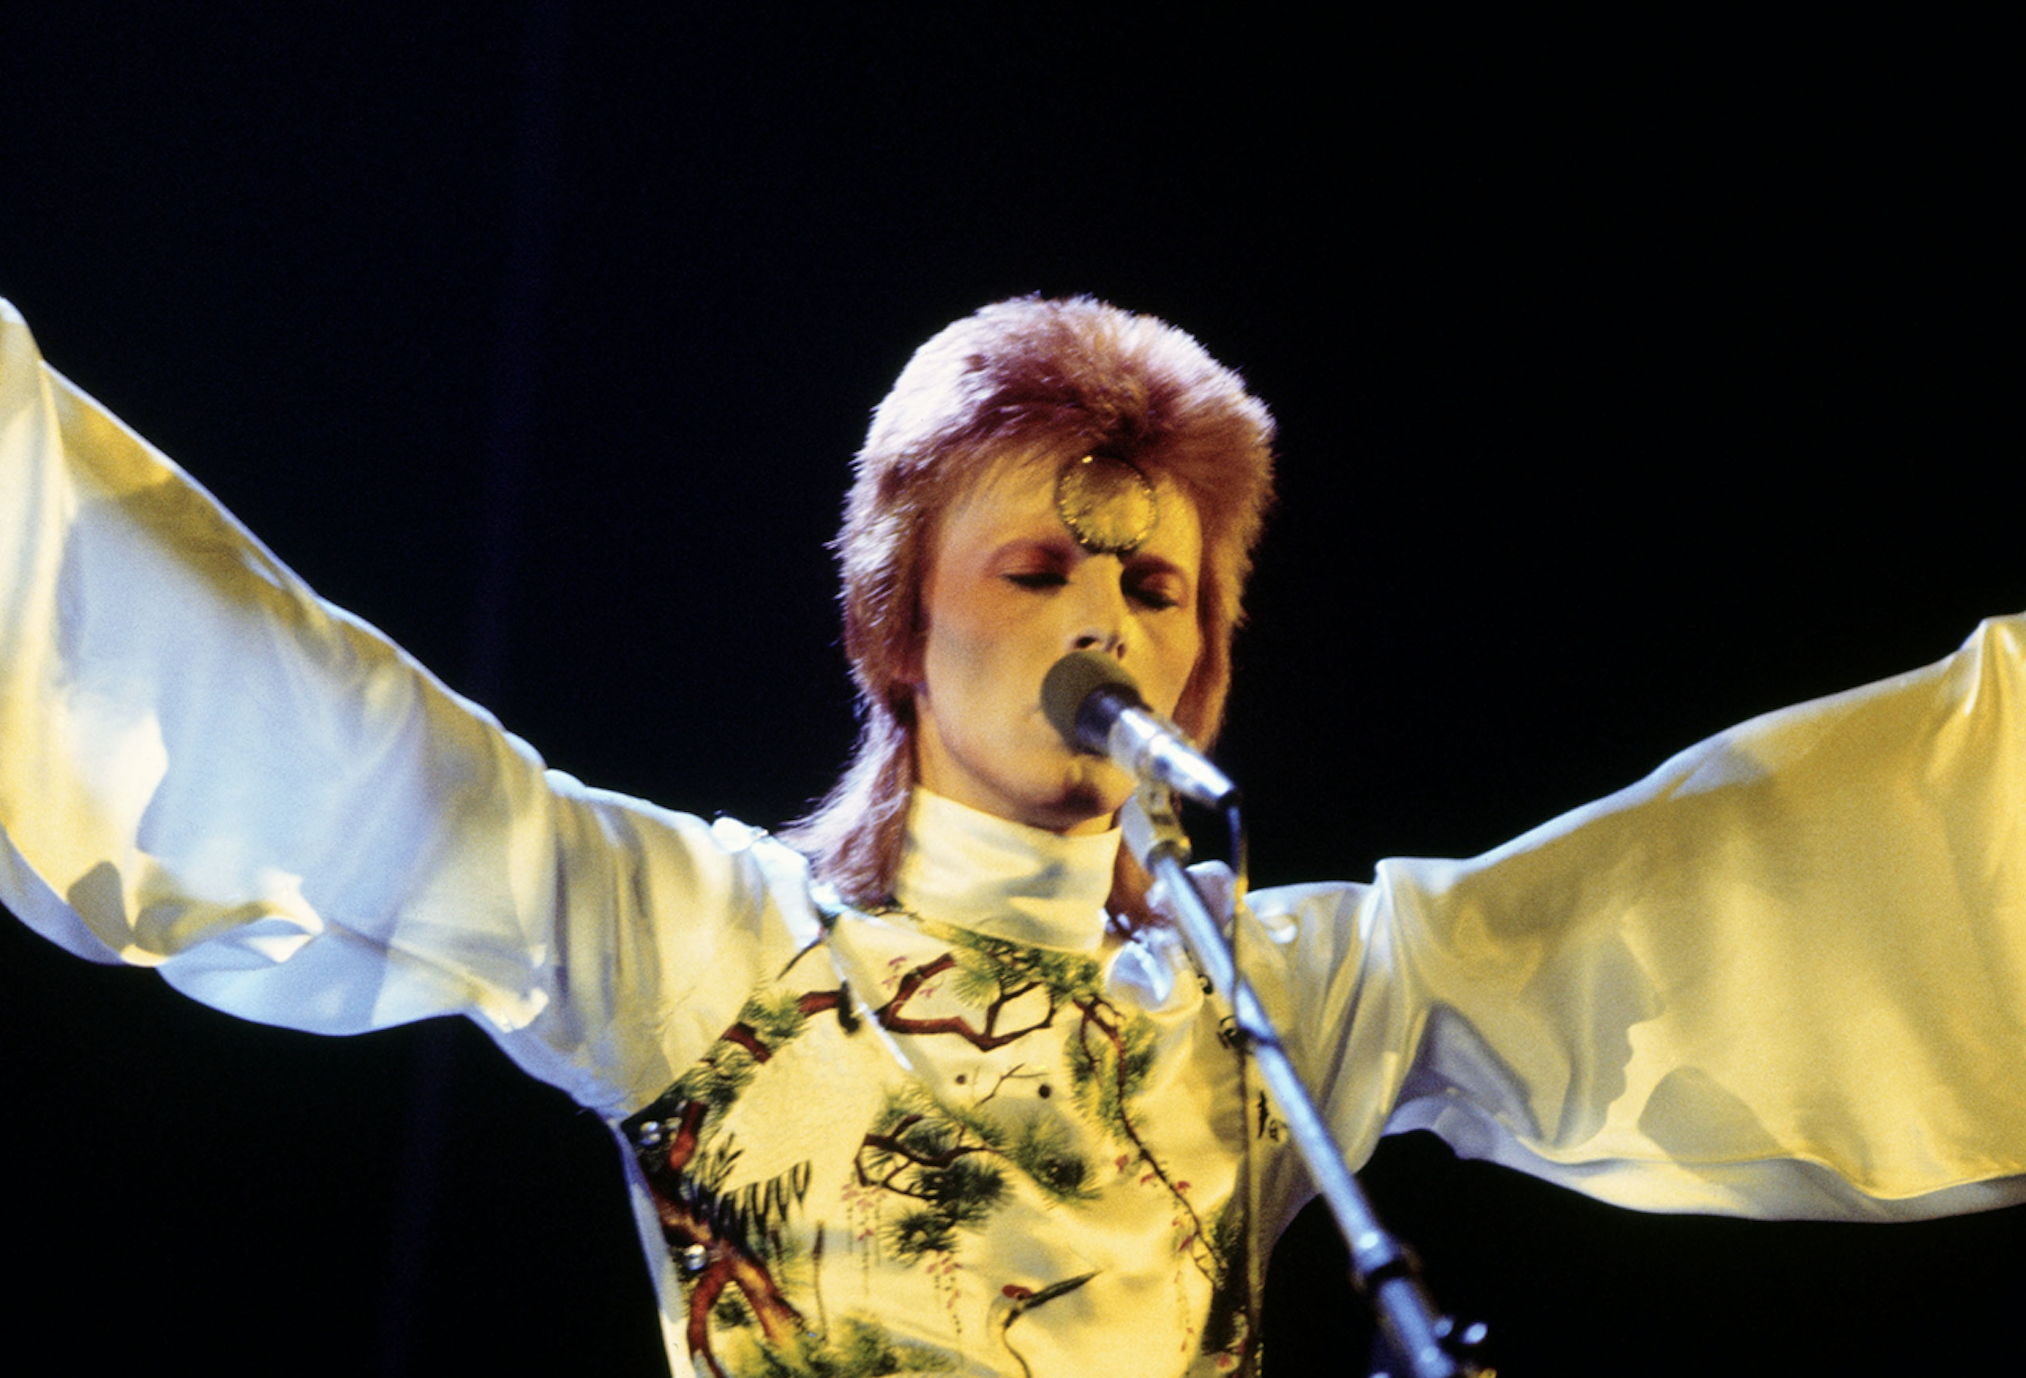 Here's Your First Look at the Upcoming David Bowie Biopic, Stardust